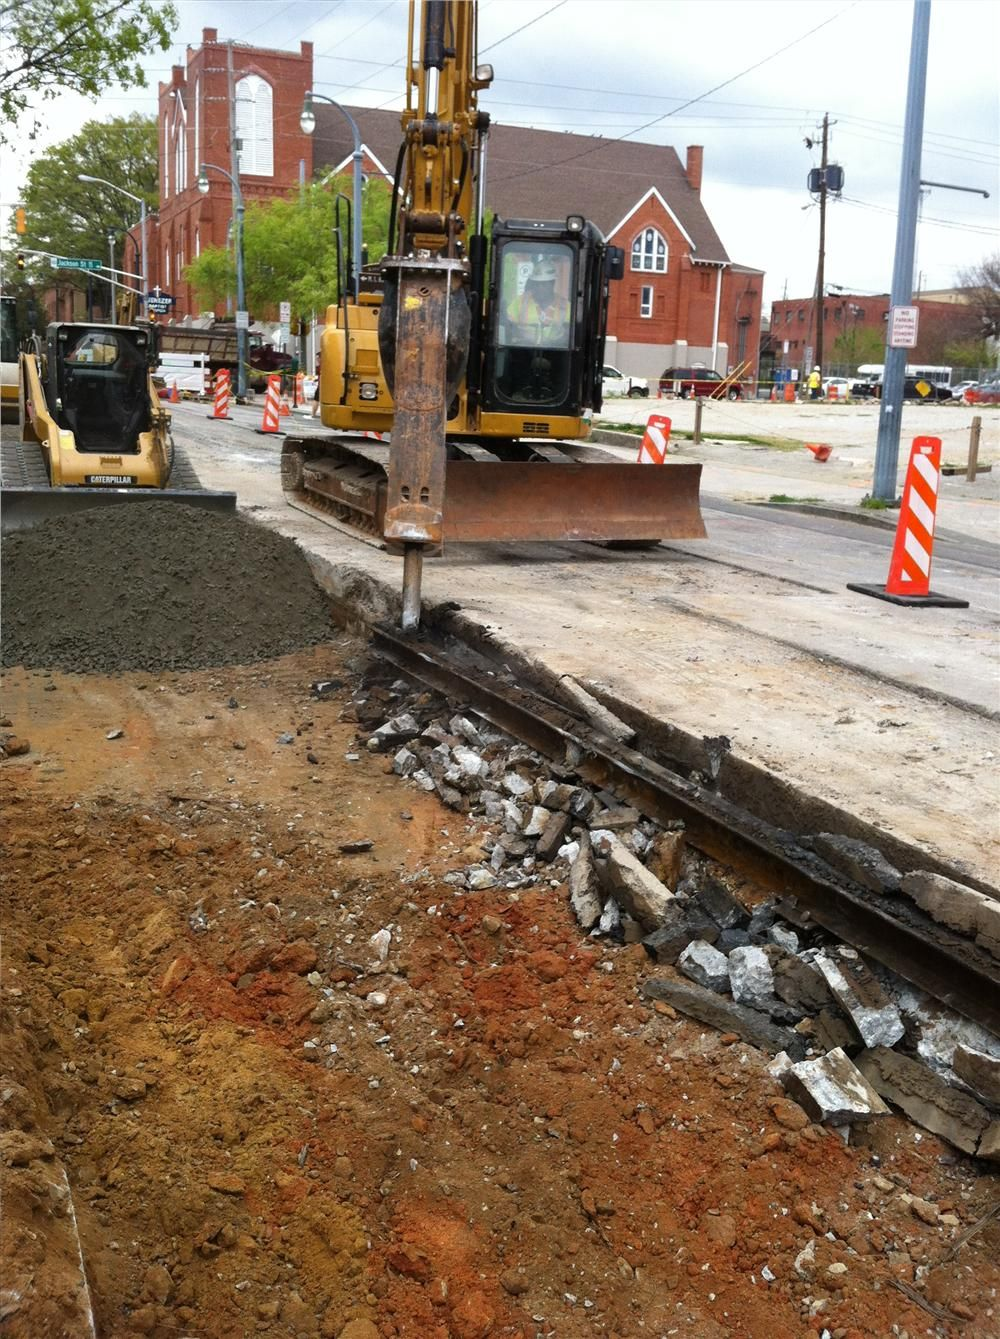 (URS team photo) A construction worker places aggregate base for the new streetcar line.